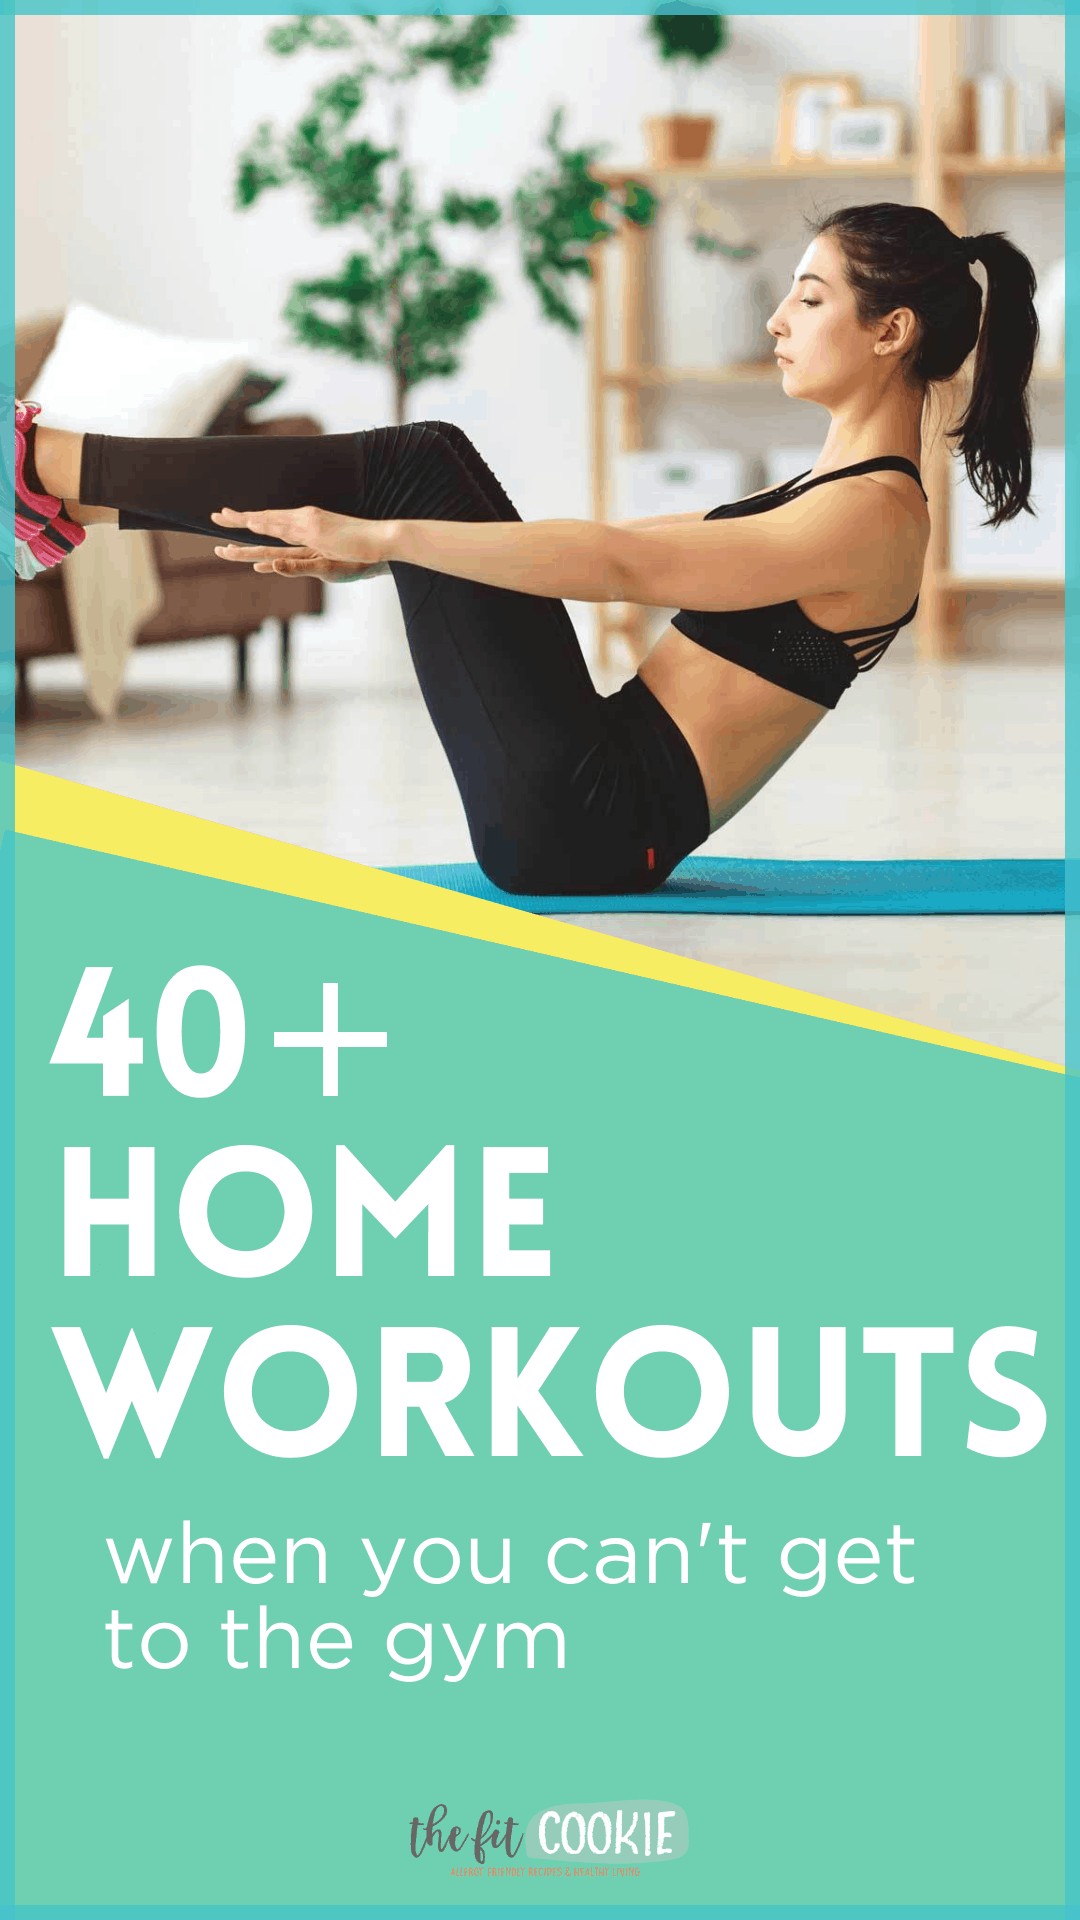 40+ home workouts when you can't get to the gym